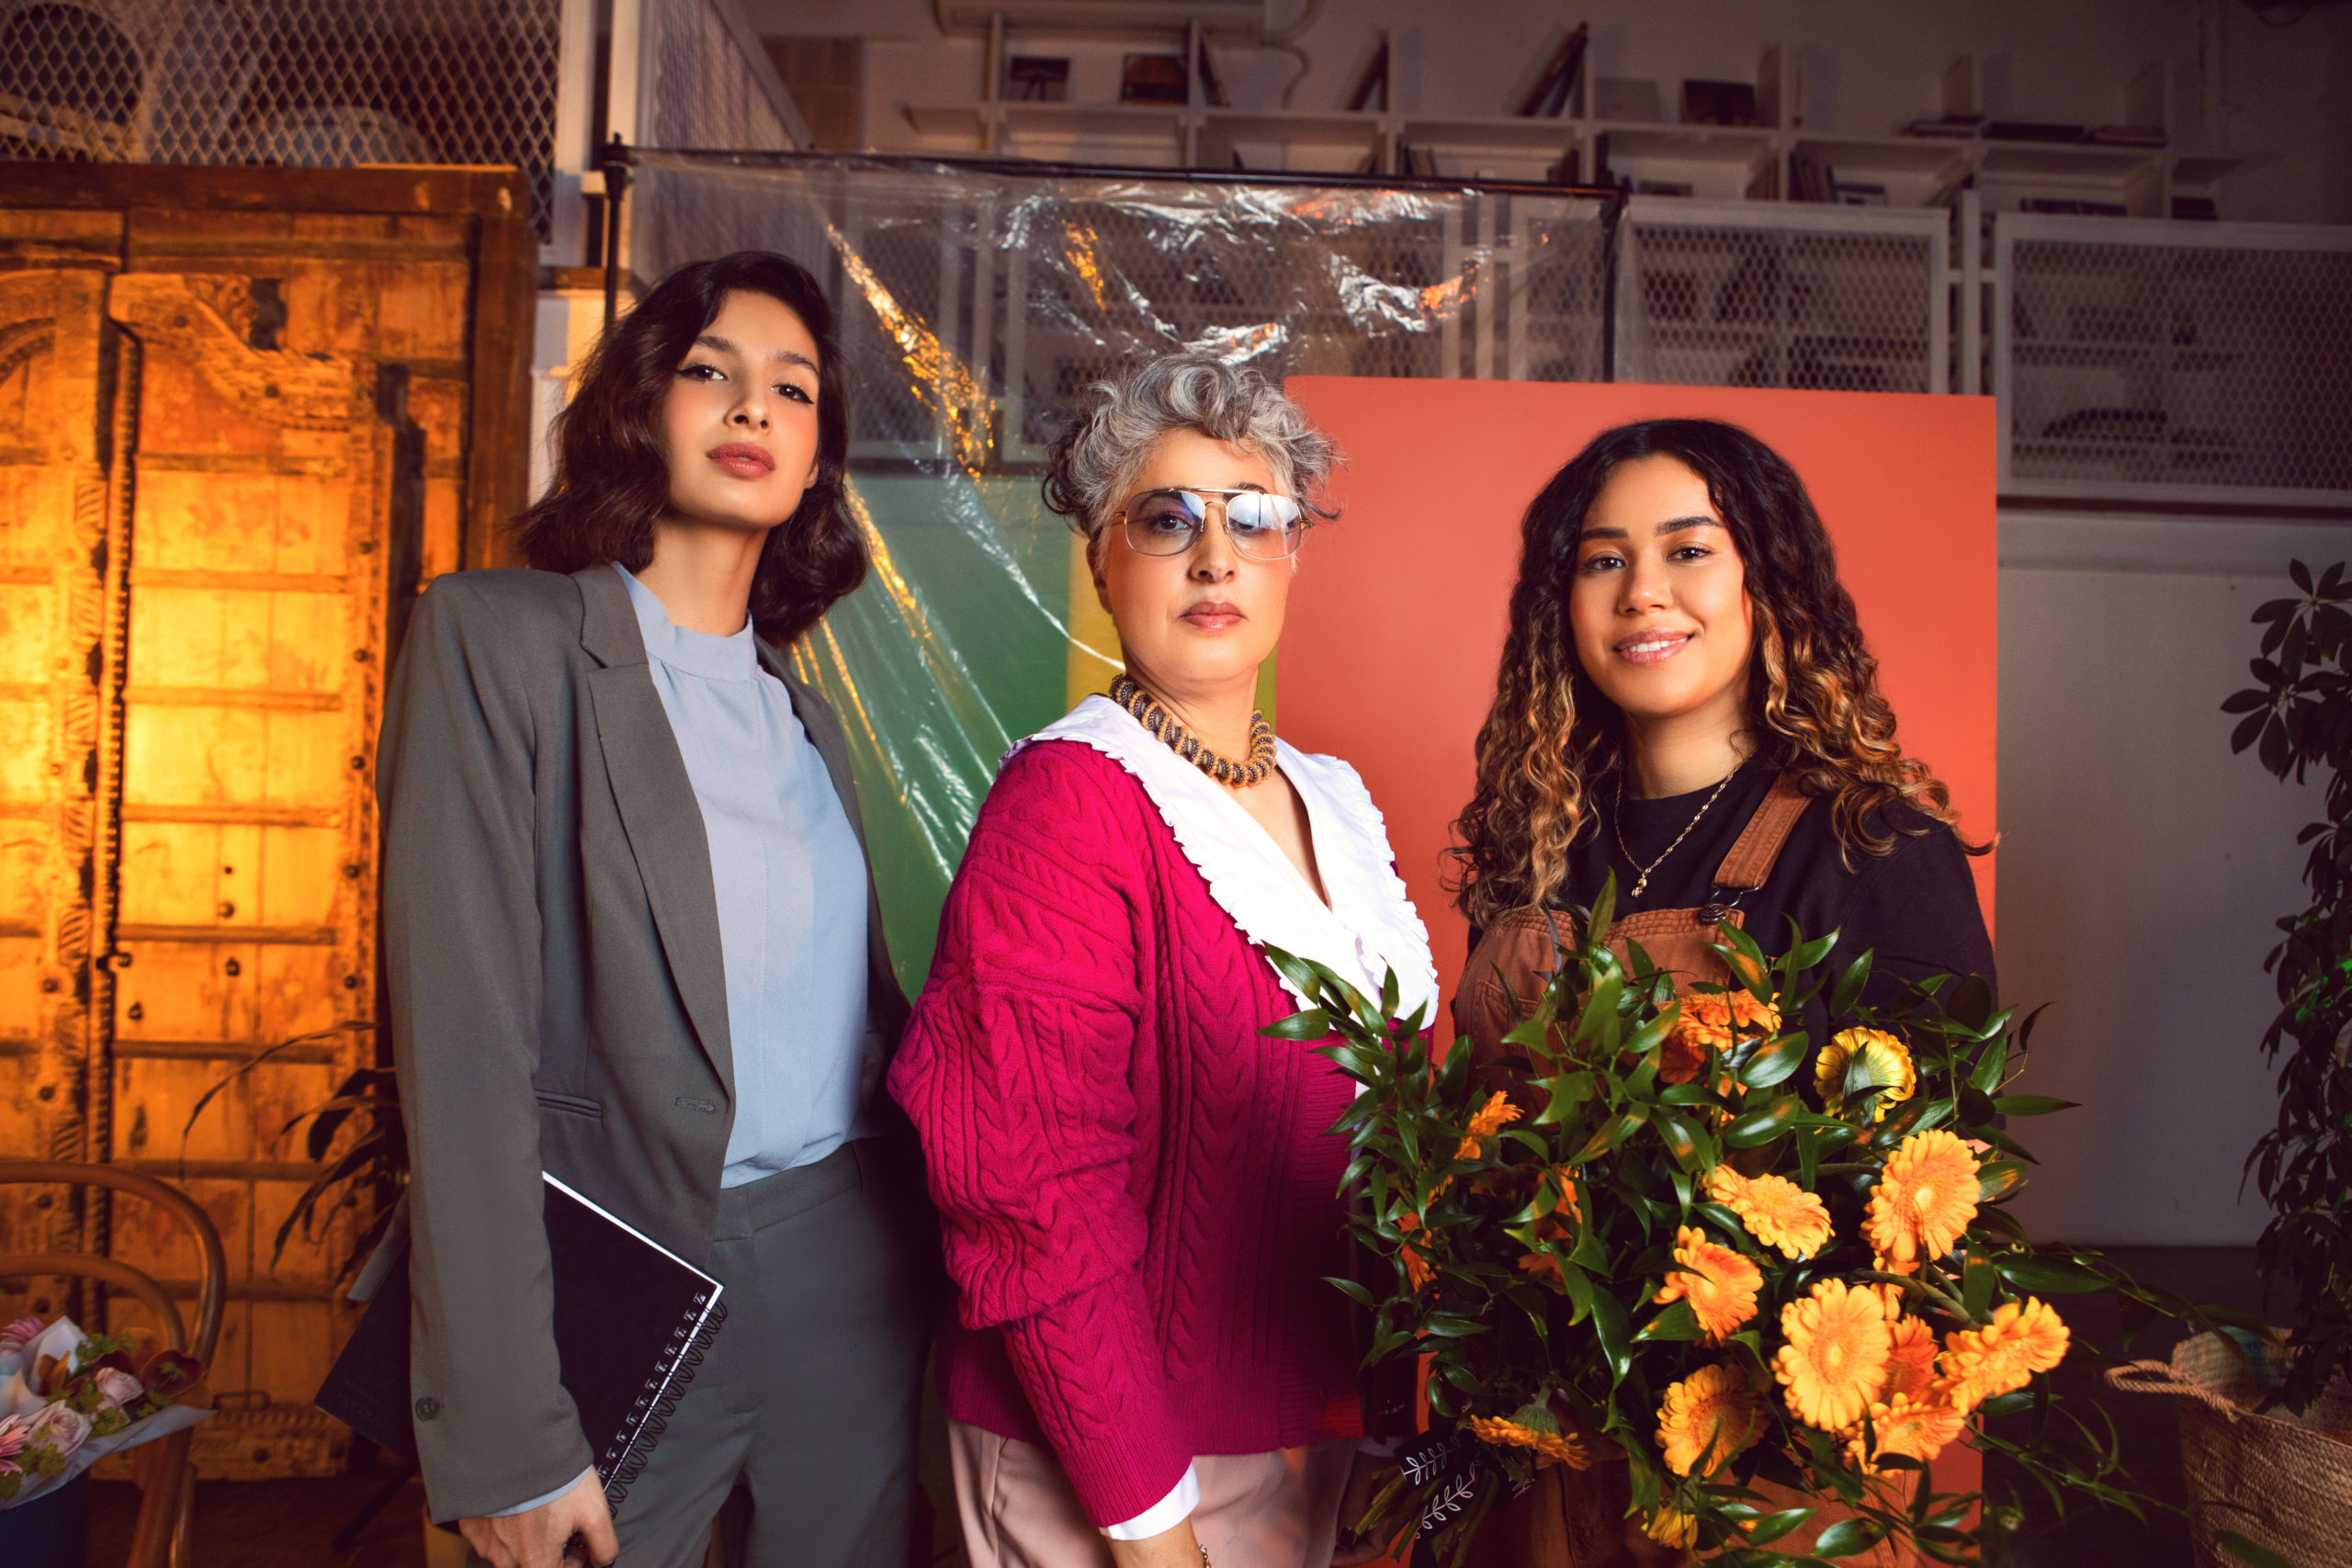 Floward celebrates Mother's Day and International Women's Day